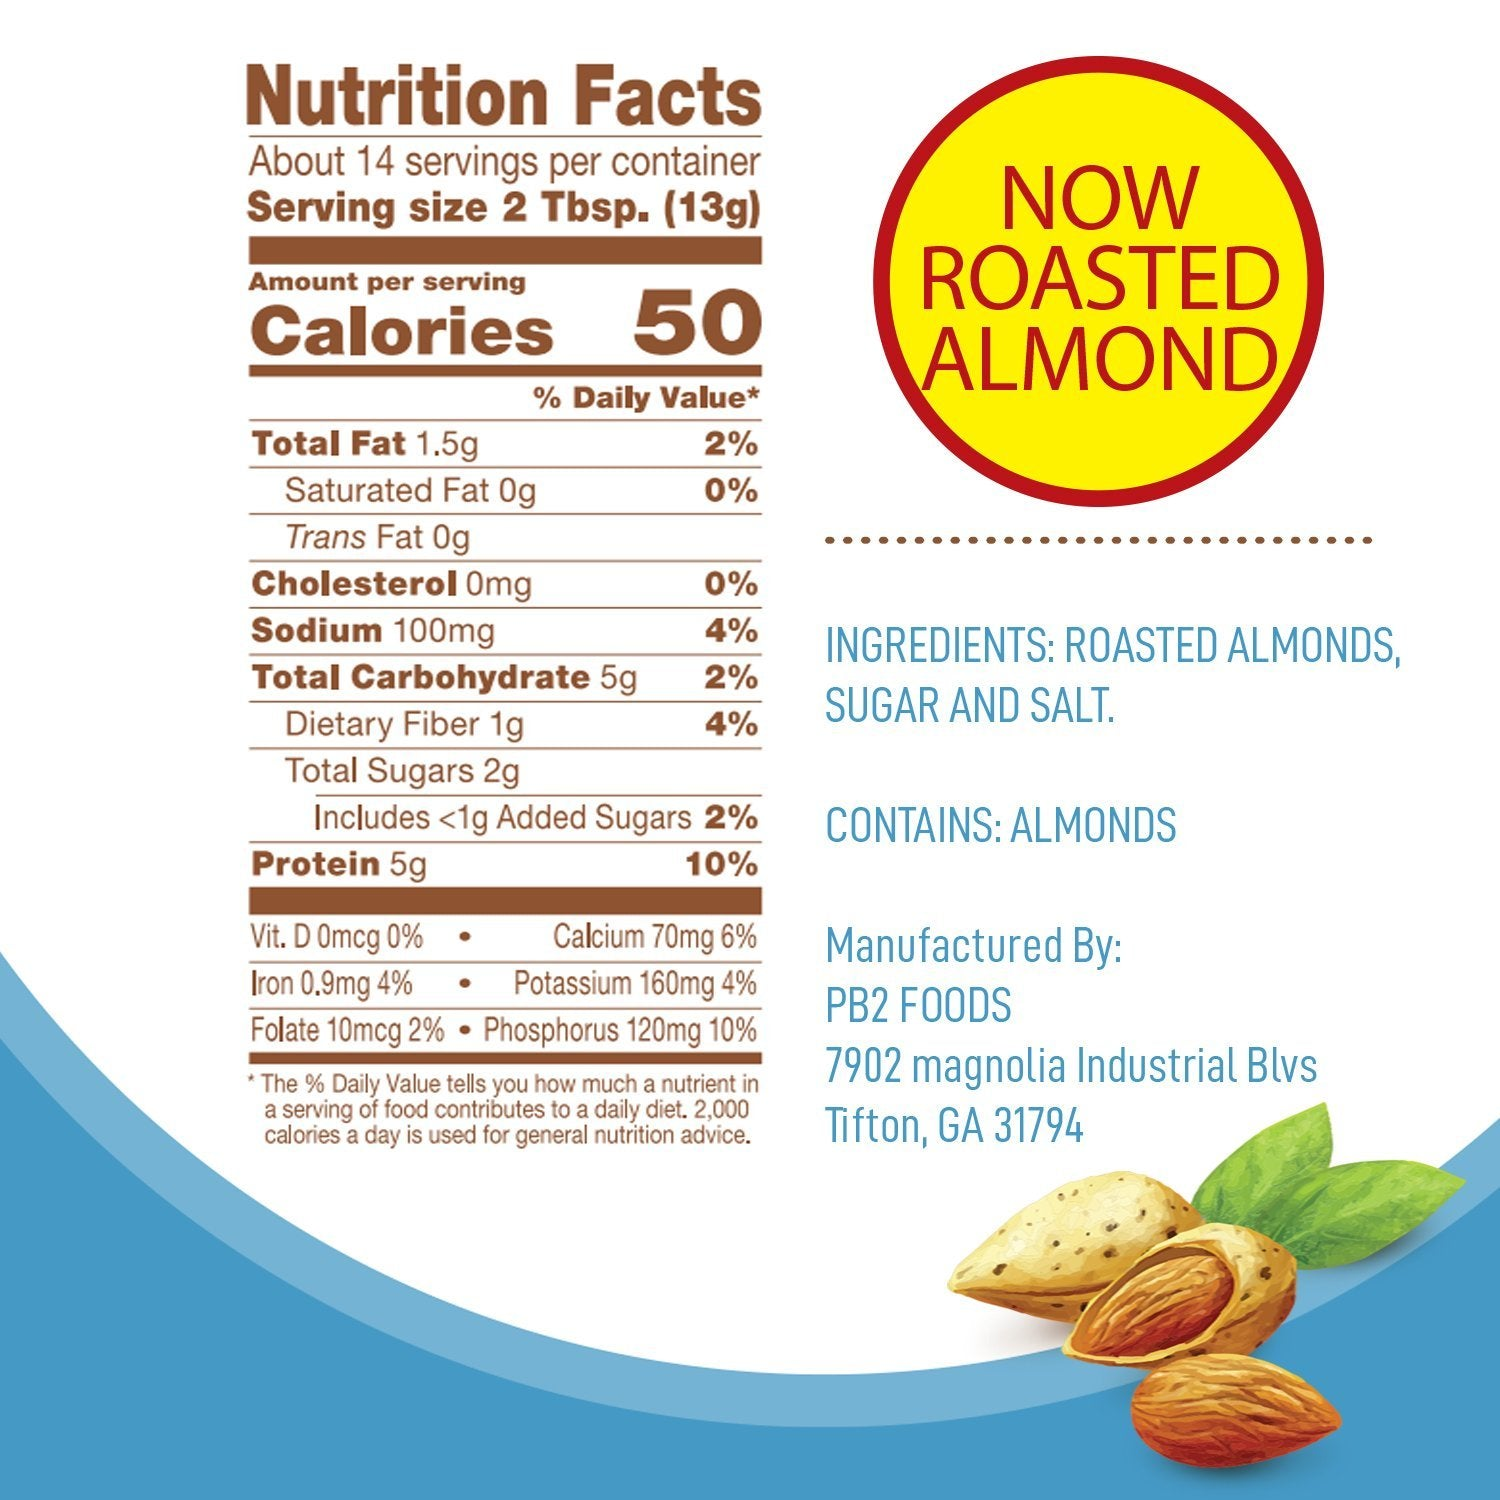 Nutrition Facts For PB2 Powdered Almond Butter